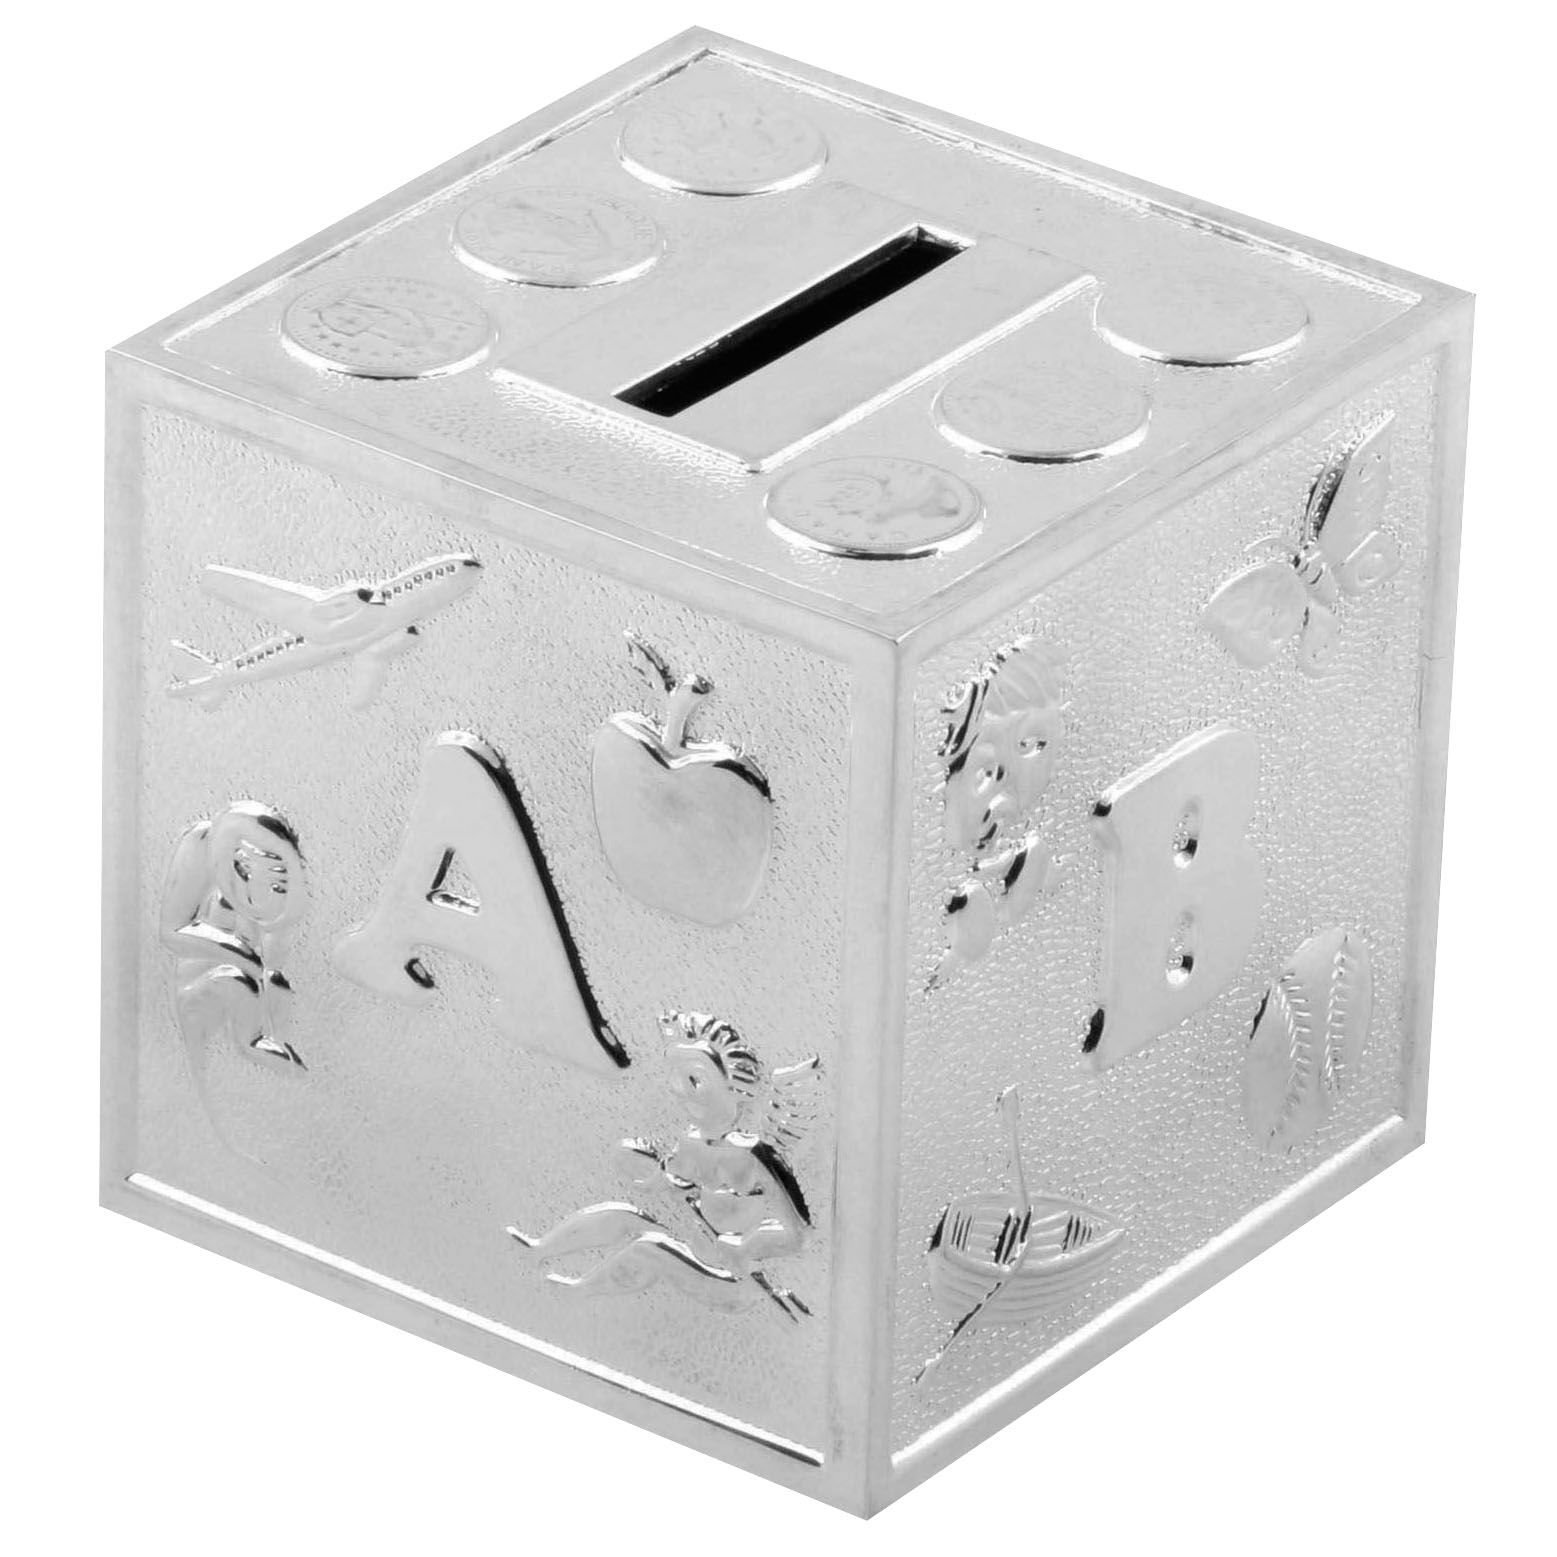 Bambino Bambino Bambino S/Plated Money Box - Cube A B C